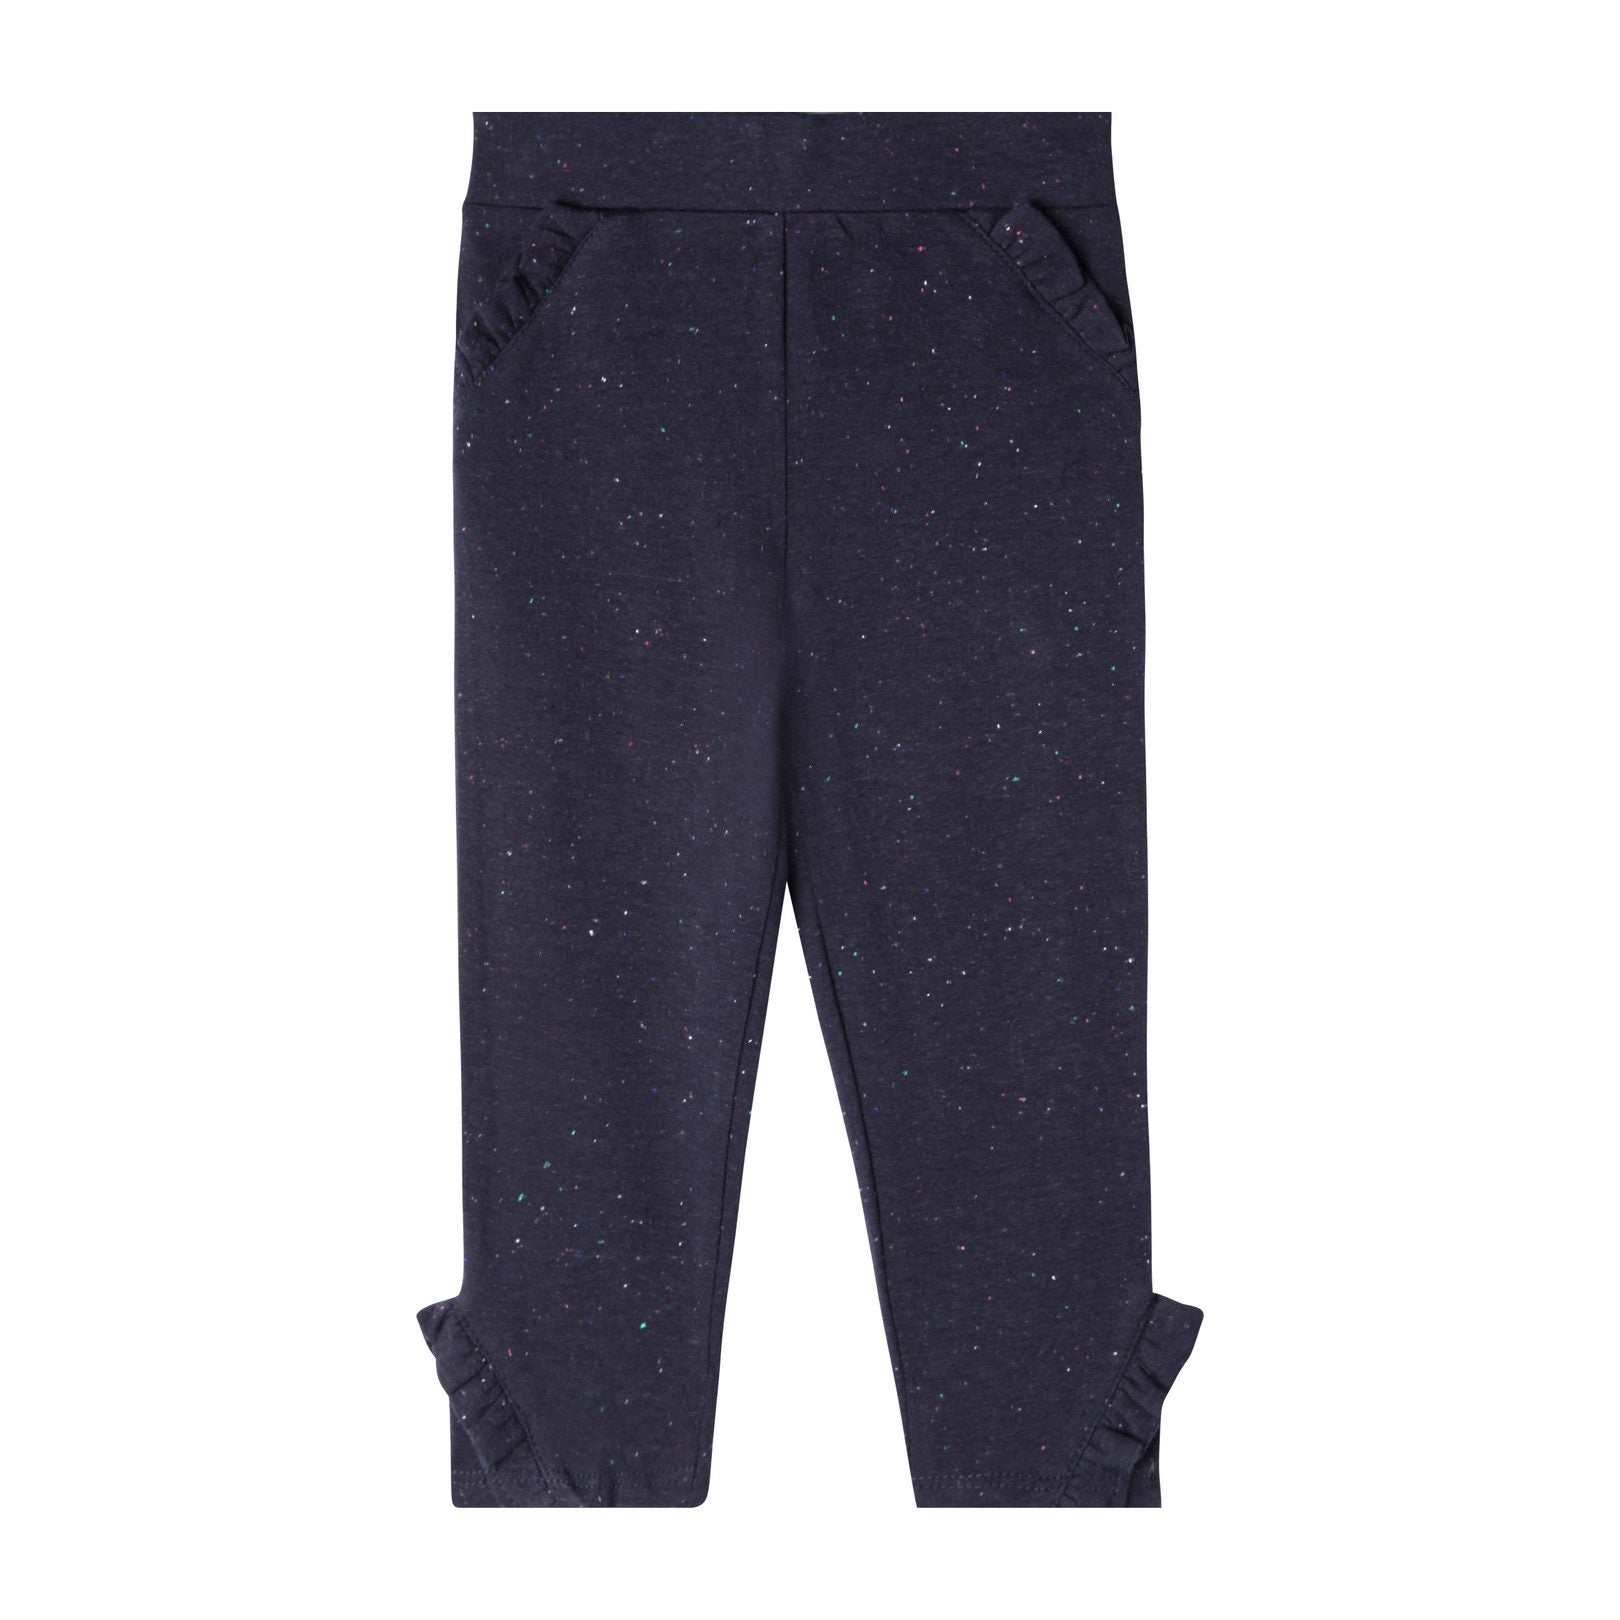 Art & Eden Organic Cotton Molly Pant - Northern Lights